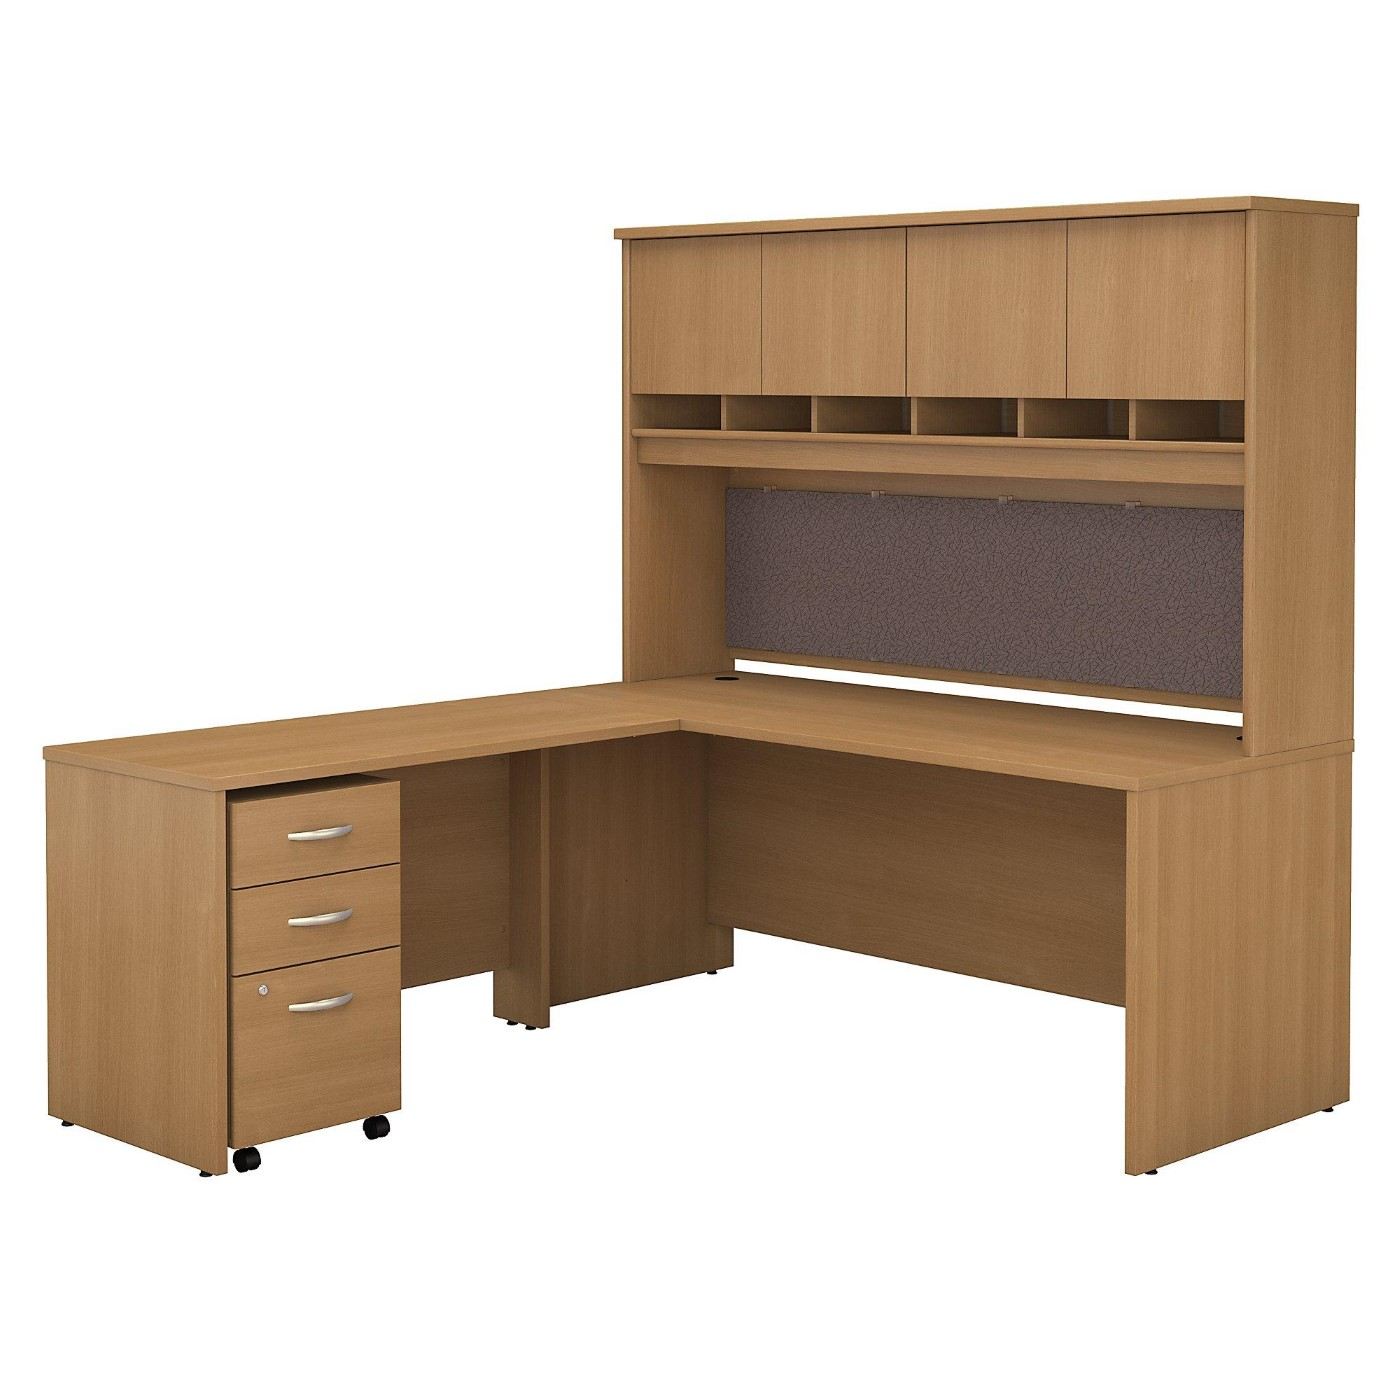 <font color=#c60><b>BUSH BUSINESS FURNITURE SERIES C 72W L SHAPED DESK WITH HUTCH AND MOBILE FILE CABINET. FREE SHIPPING</font></b></font></b>